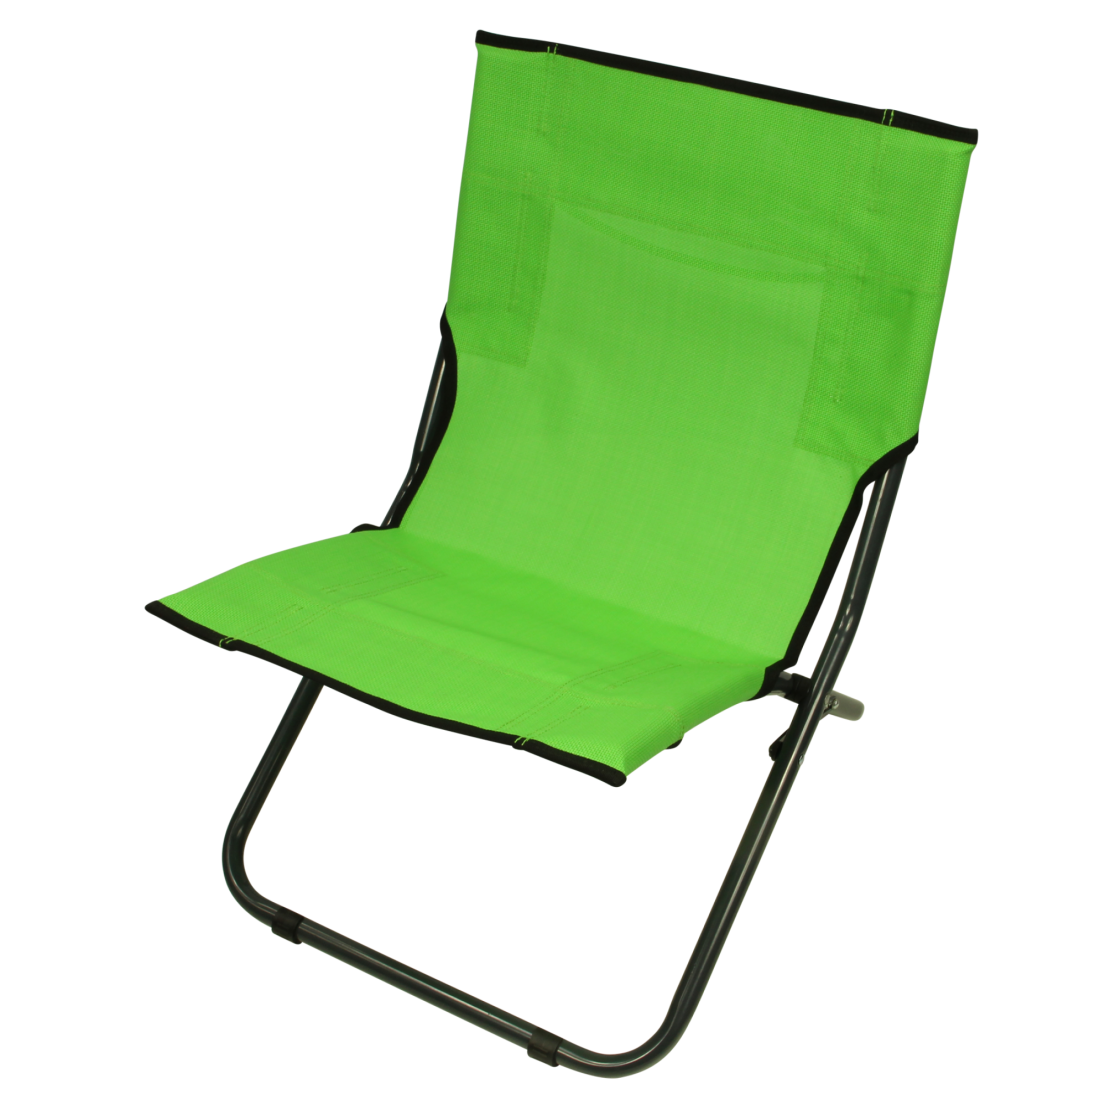 Fridani Bcg 620 Mobile Camping Chair Beach Chair Foldable Textilene 3300g Outdoor Furniture Chairs Beach Chairs